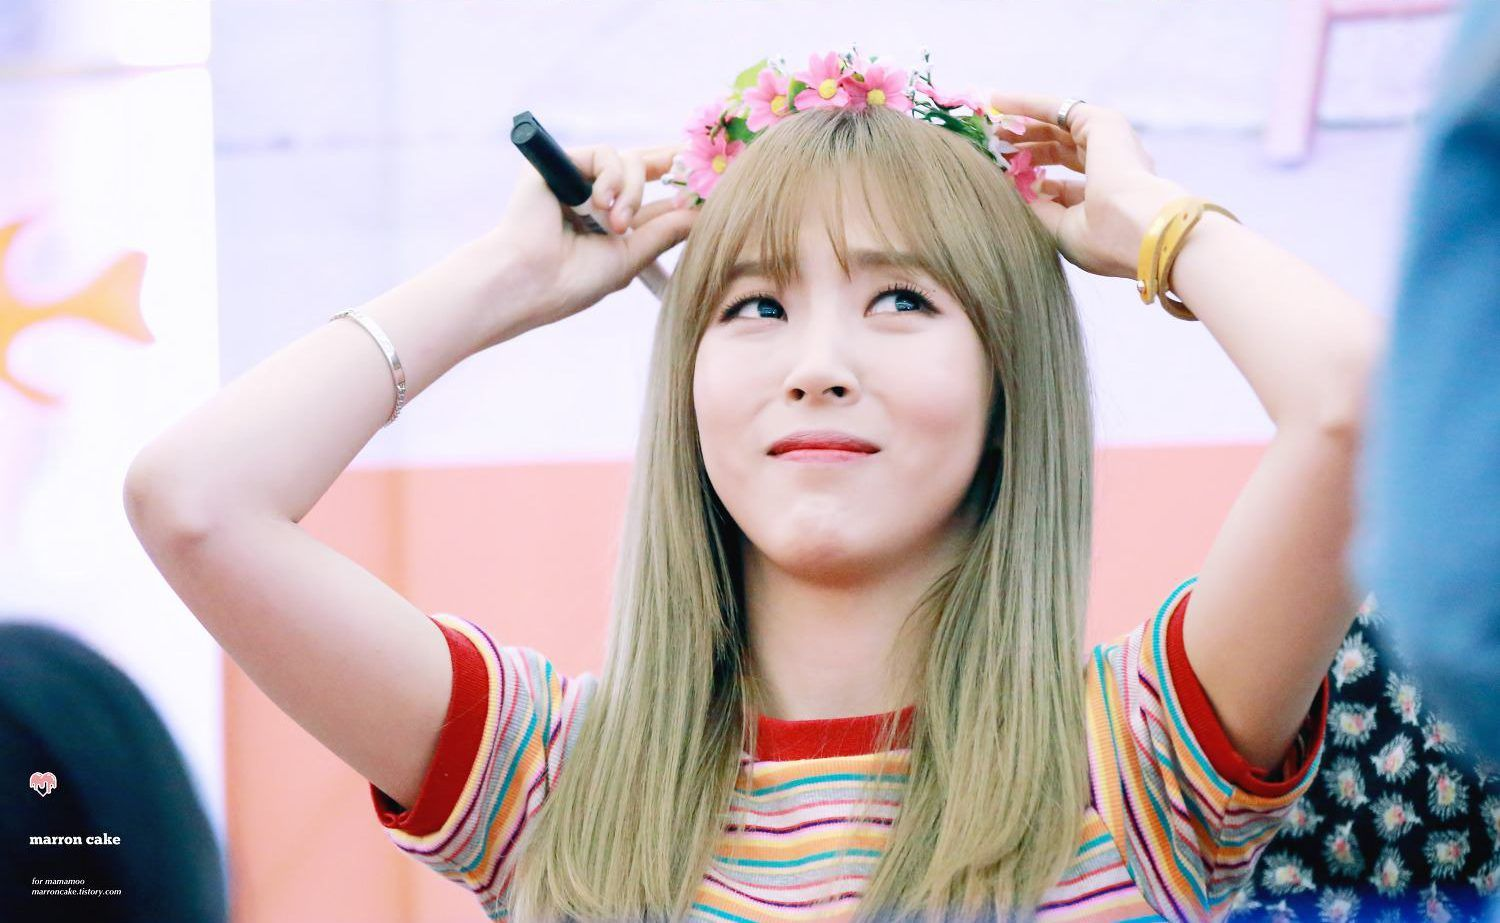 15 times mamamoo moonbyul hated flower crowns but looked great 15 times mamamoo moonbyul hated flower crowns but looked great anyway izmirmasajfo